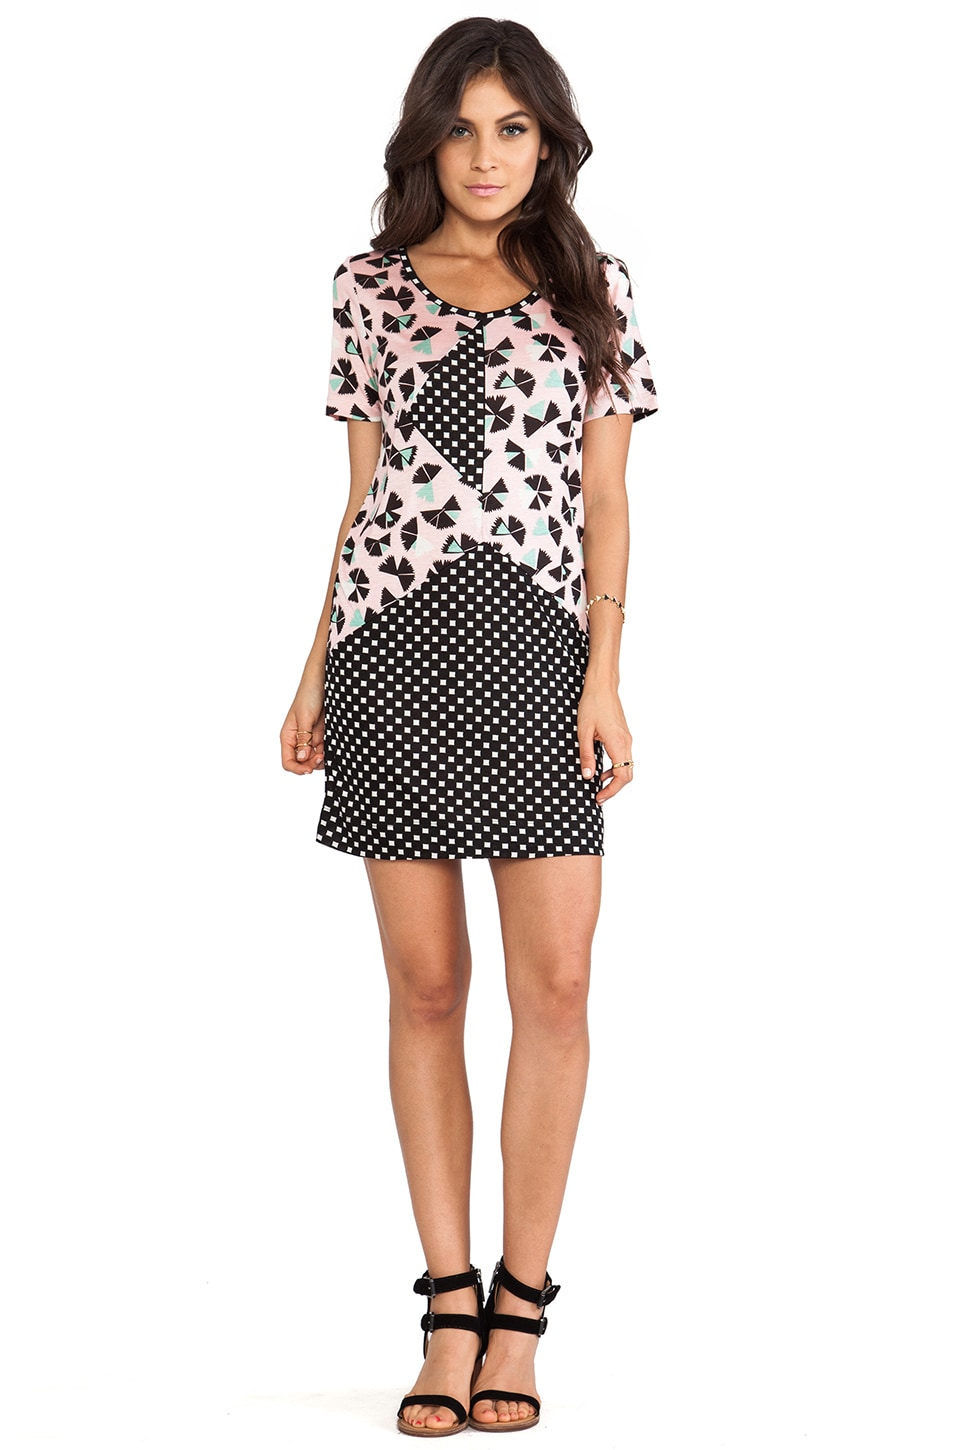 Marc by Marc Jacobs Amelia Printed Jersey Dress in Adobe Pink Multi